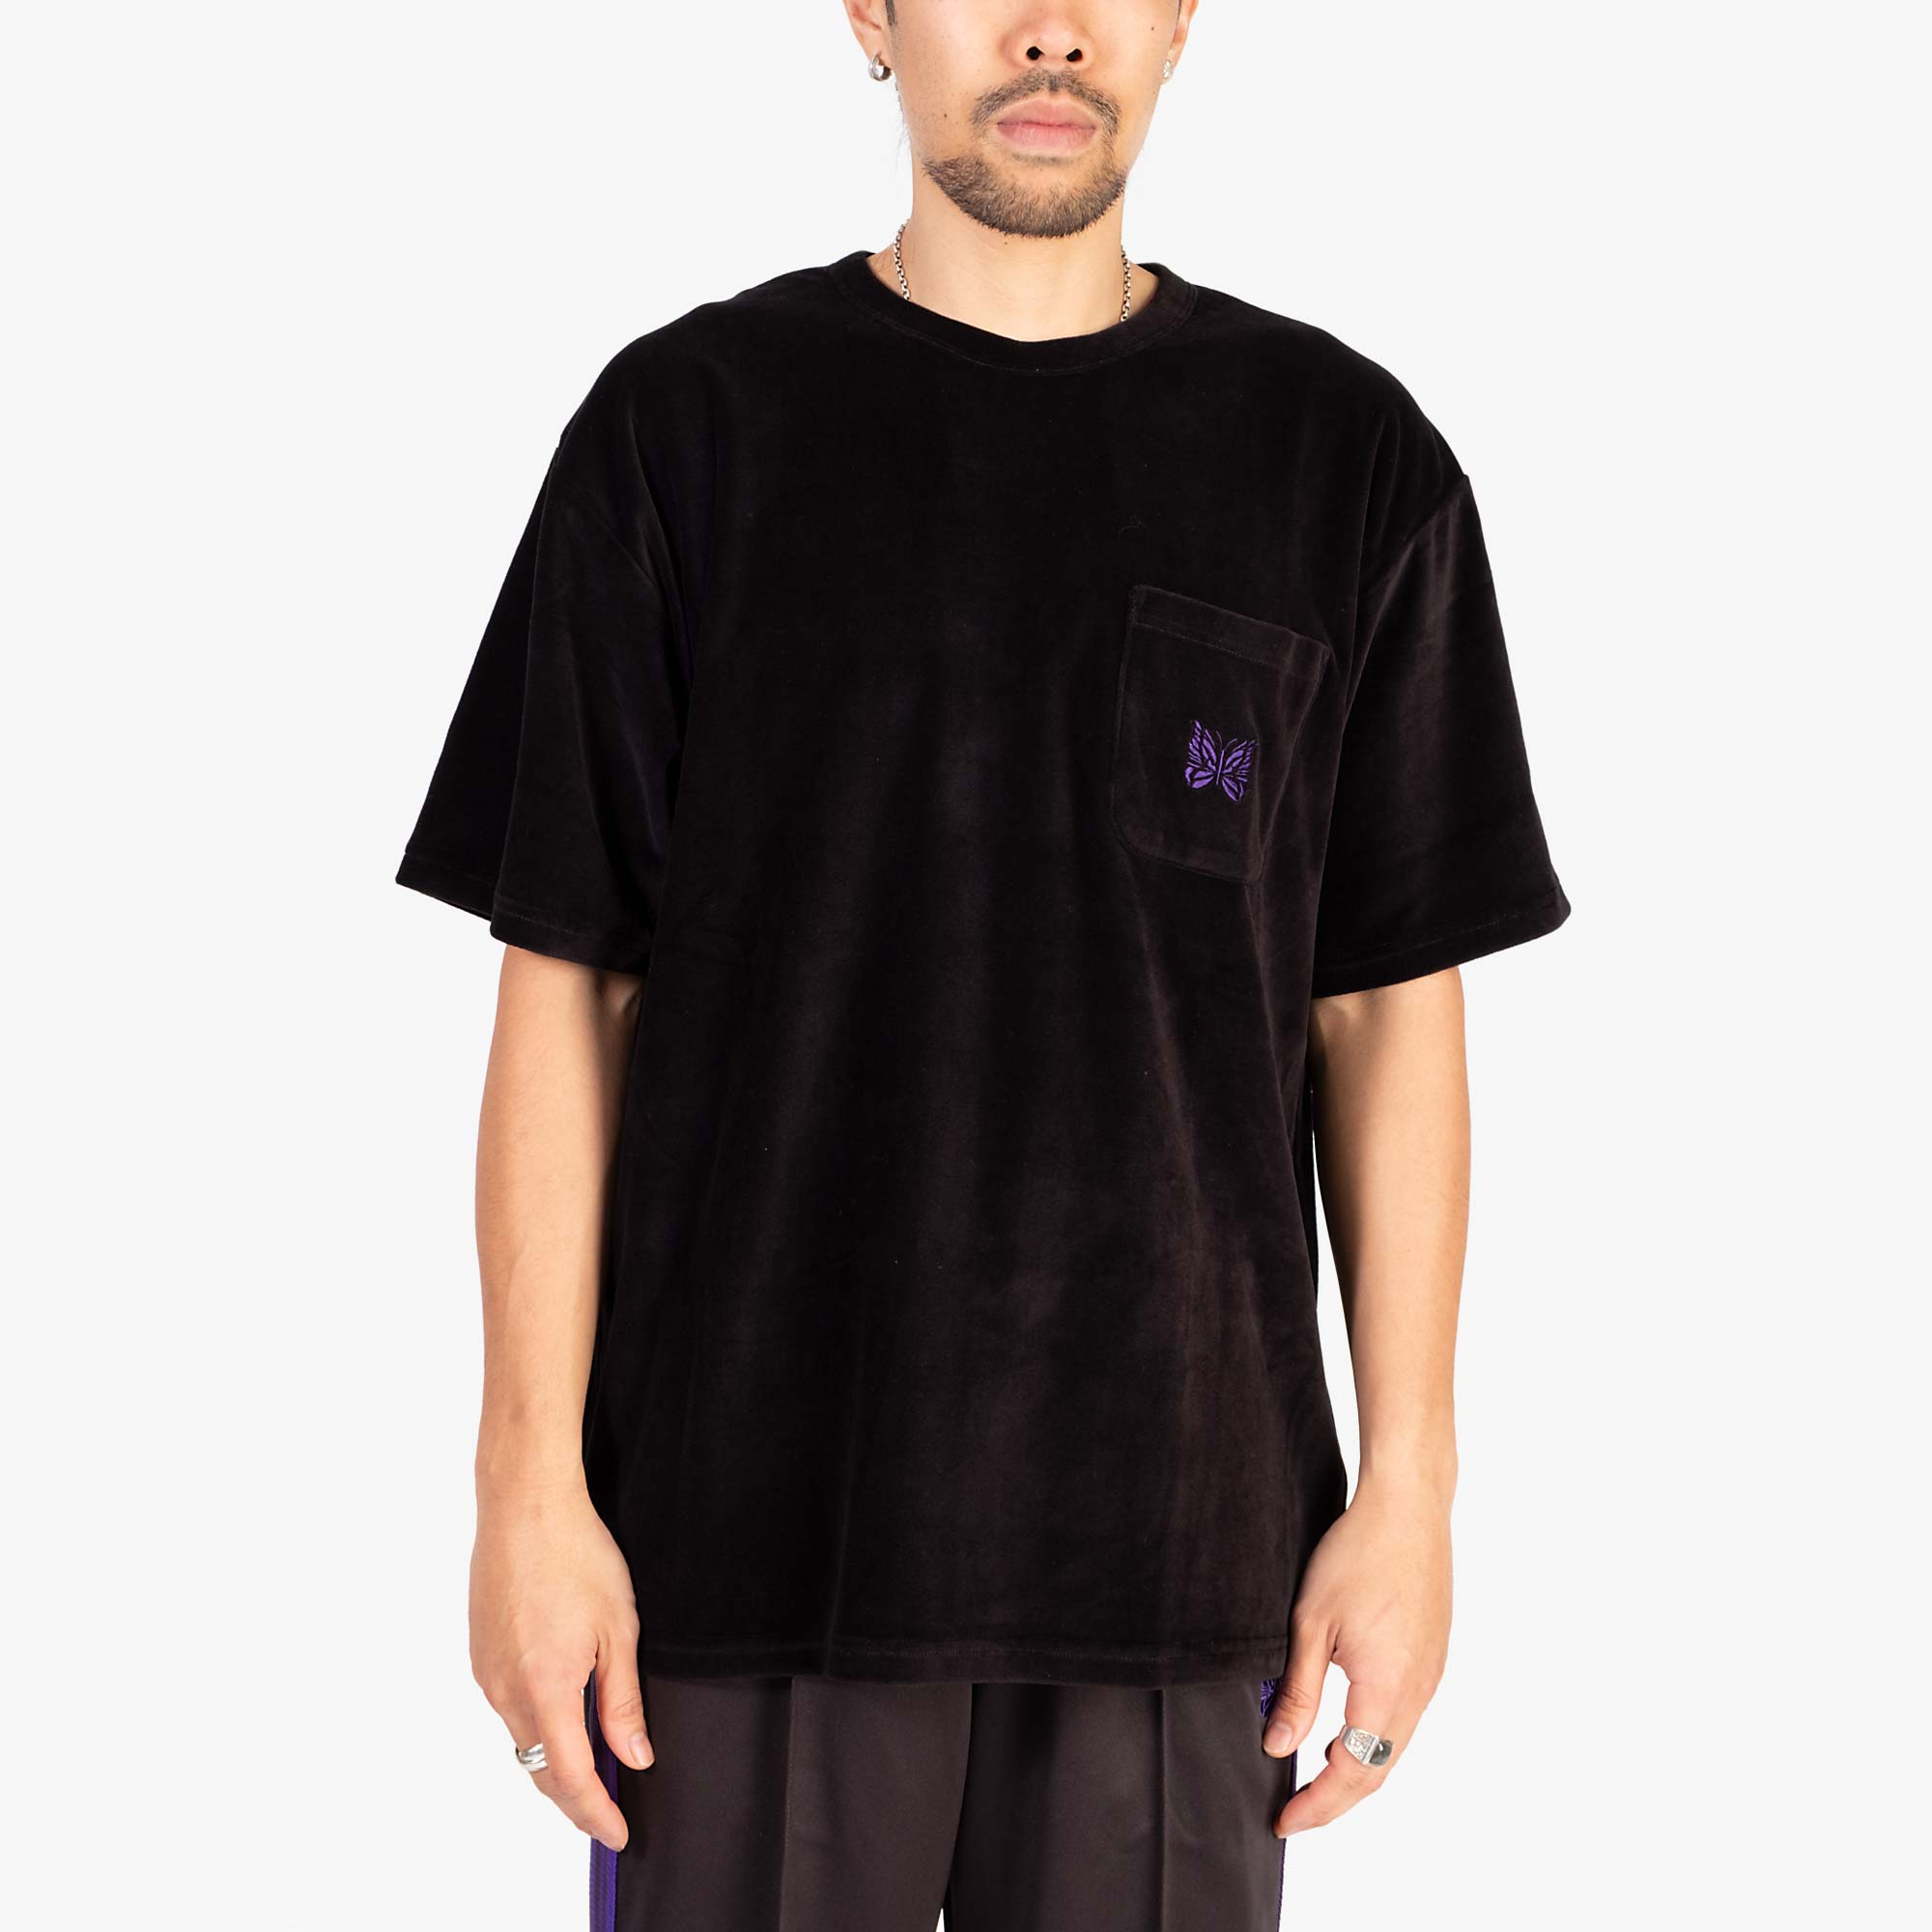 Needles Short Sleeve Pocket T-Shirt Velour - Black 5